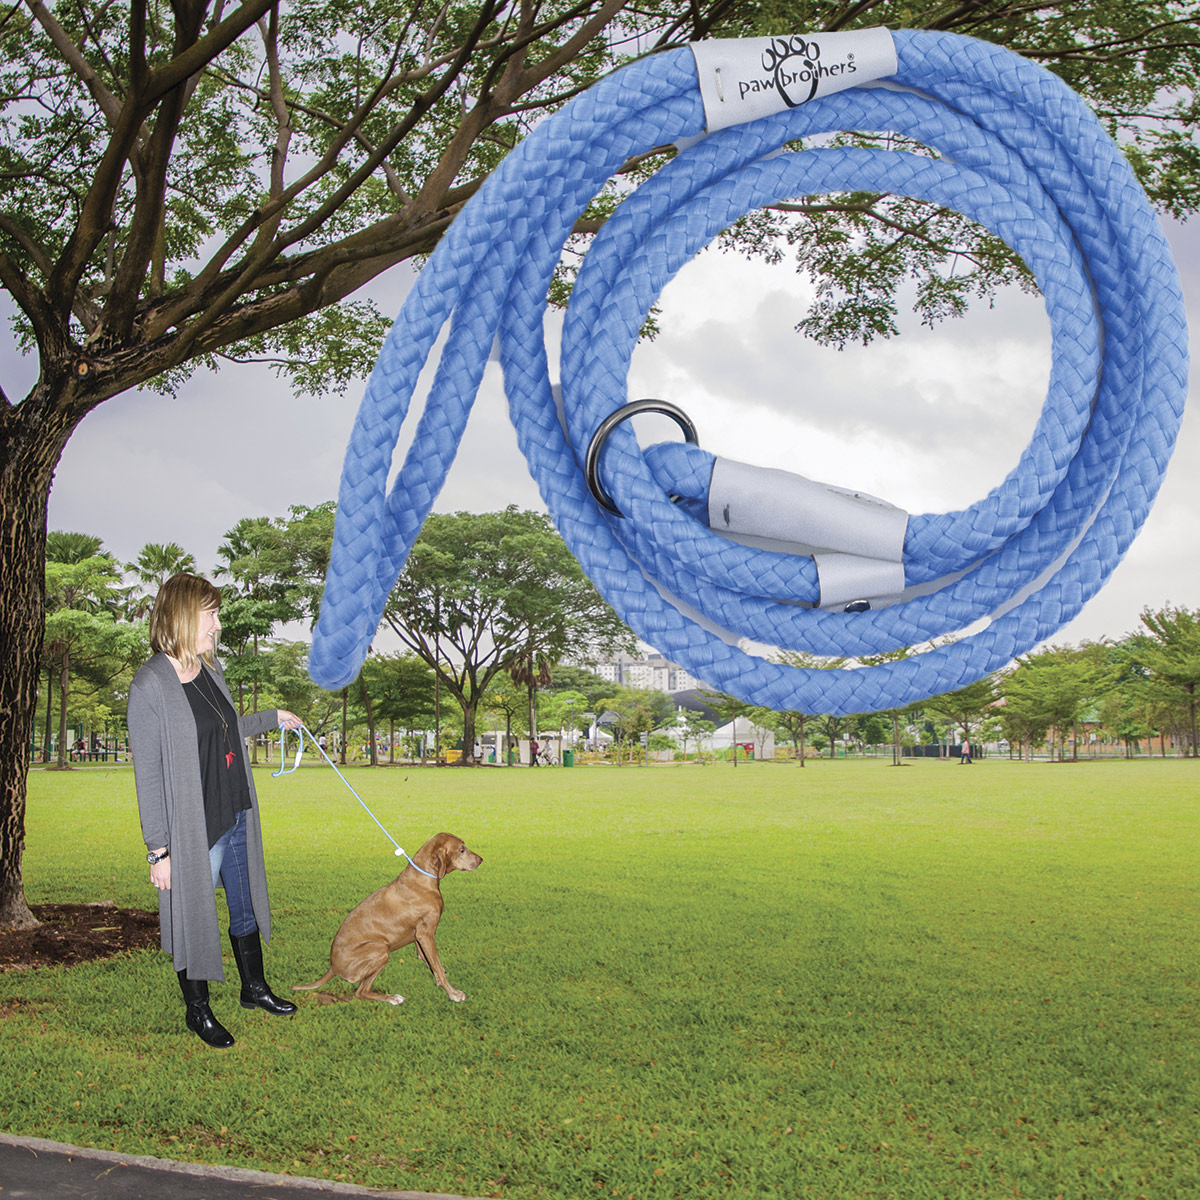 Paw Brothers Light Blue 6 foot Rope Slip Lead with Safety Stop